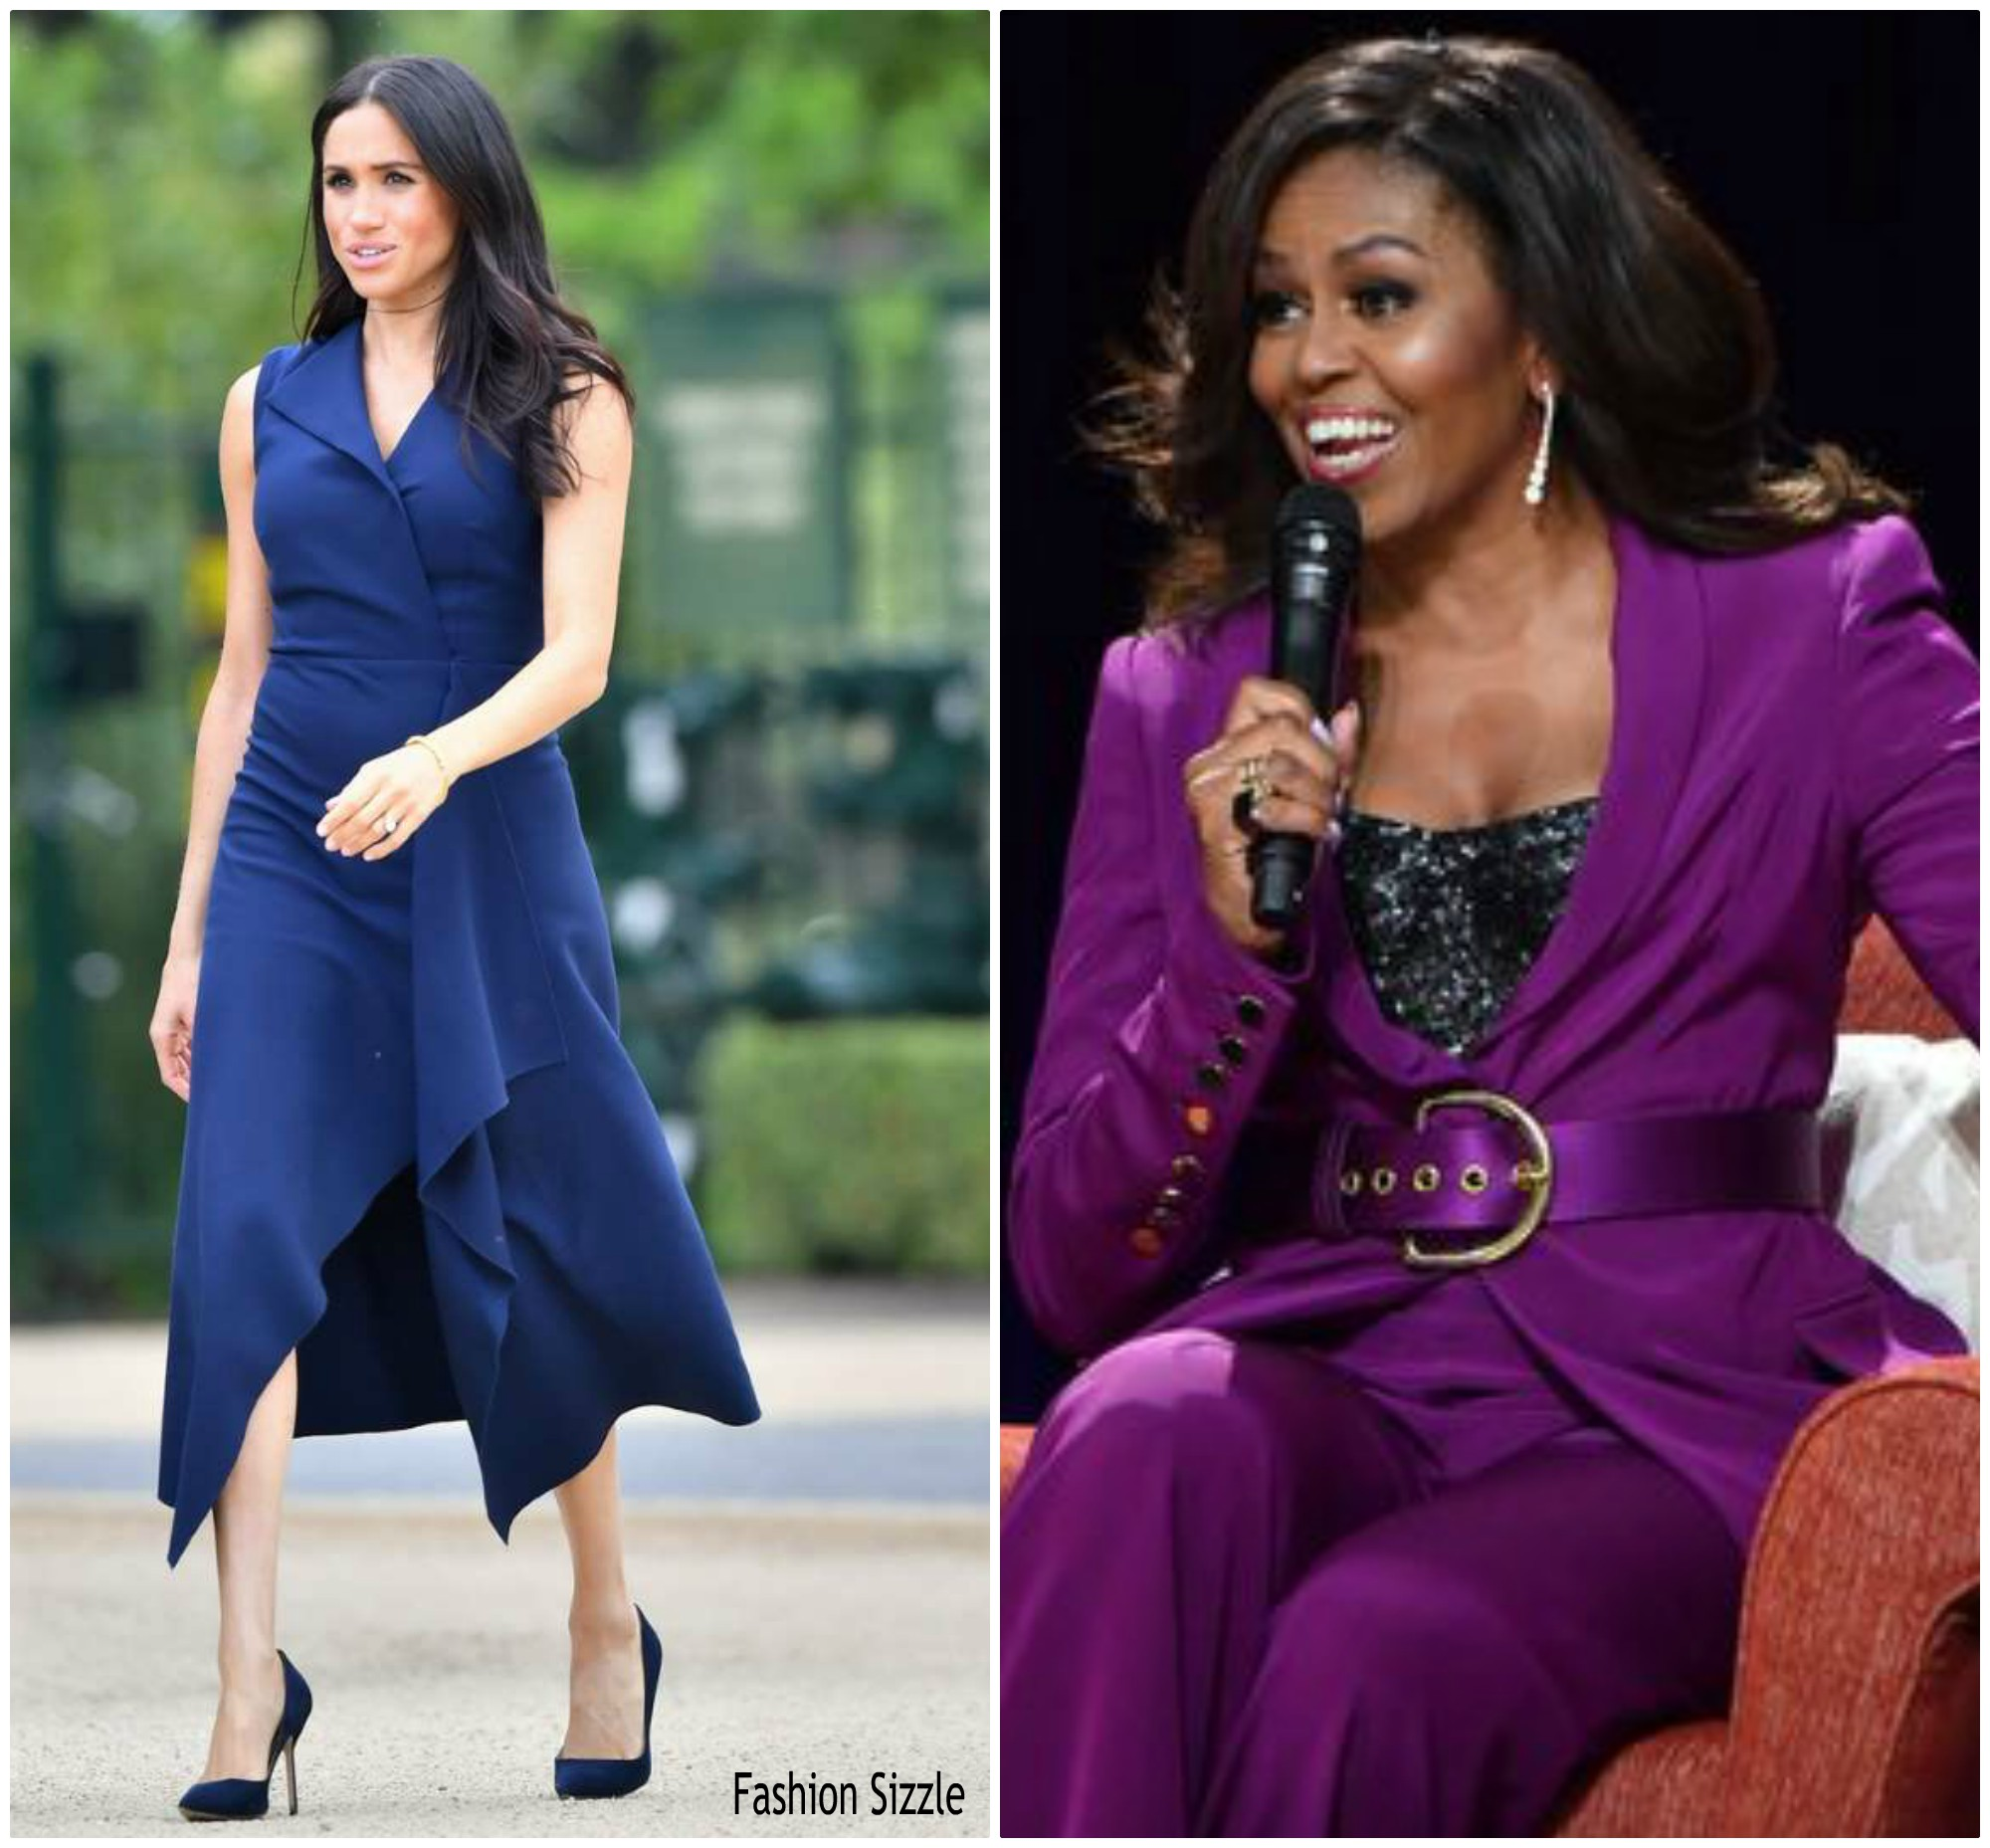 meghan-markle-interviewed-michelle-obama-as-guest-editor-for-British-Vogue